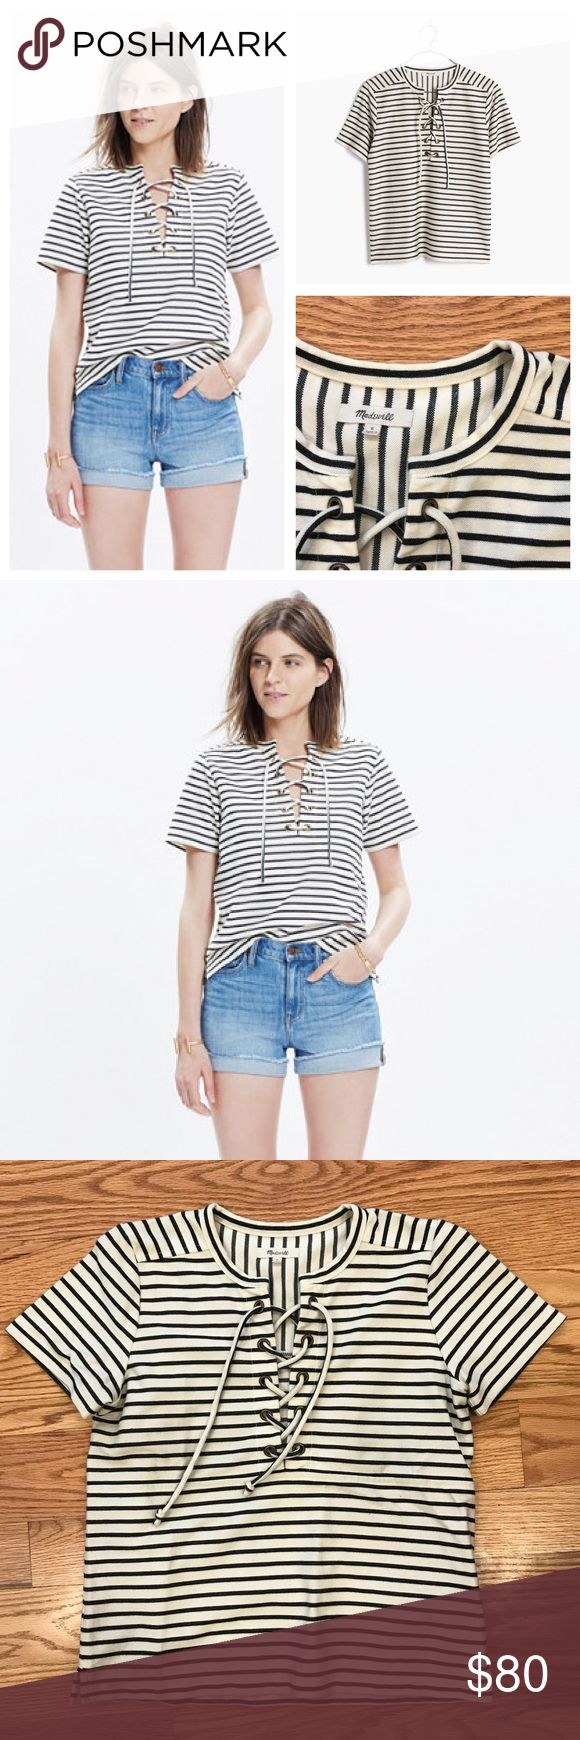 Madewell Striped Lace-Up Top Cool black and white Madewell Striped Lace-up Top. Size small. In like new condition. Feel free to ask any questions below or make me an offer. Bundle to automatically save! Madewell Tops Tees - Short Sleeve